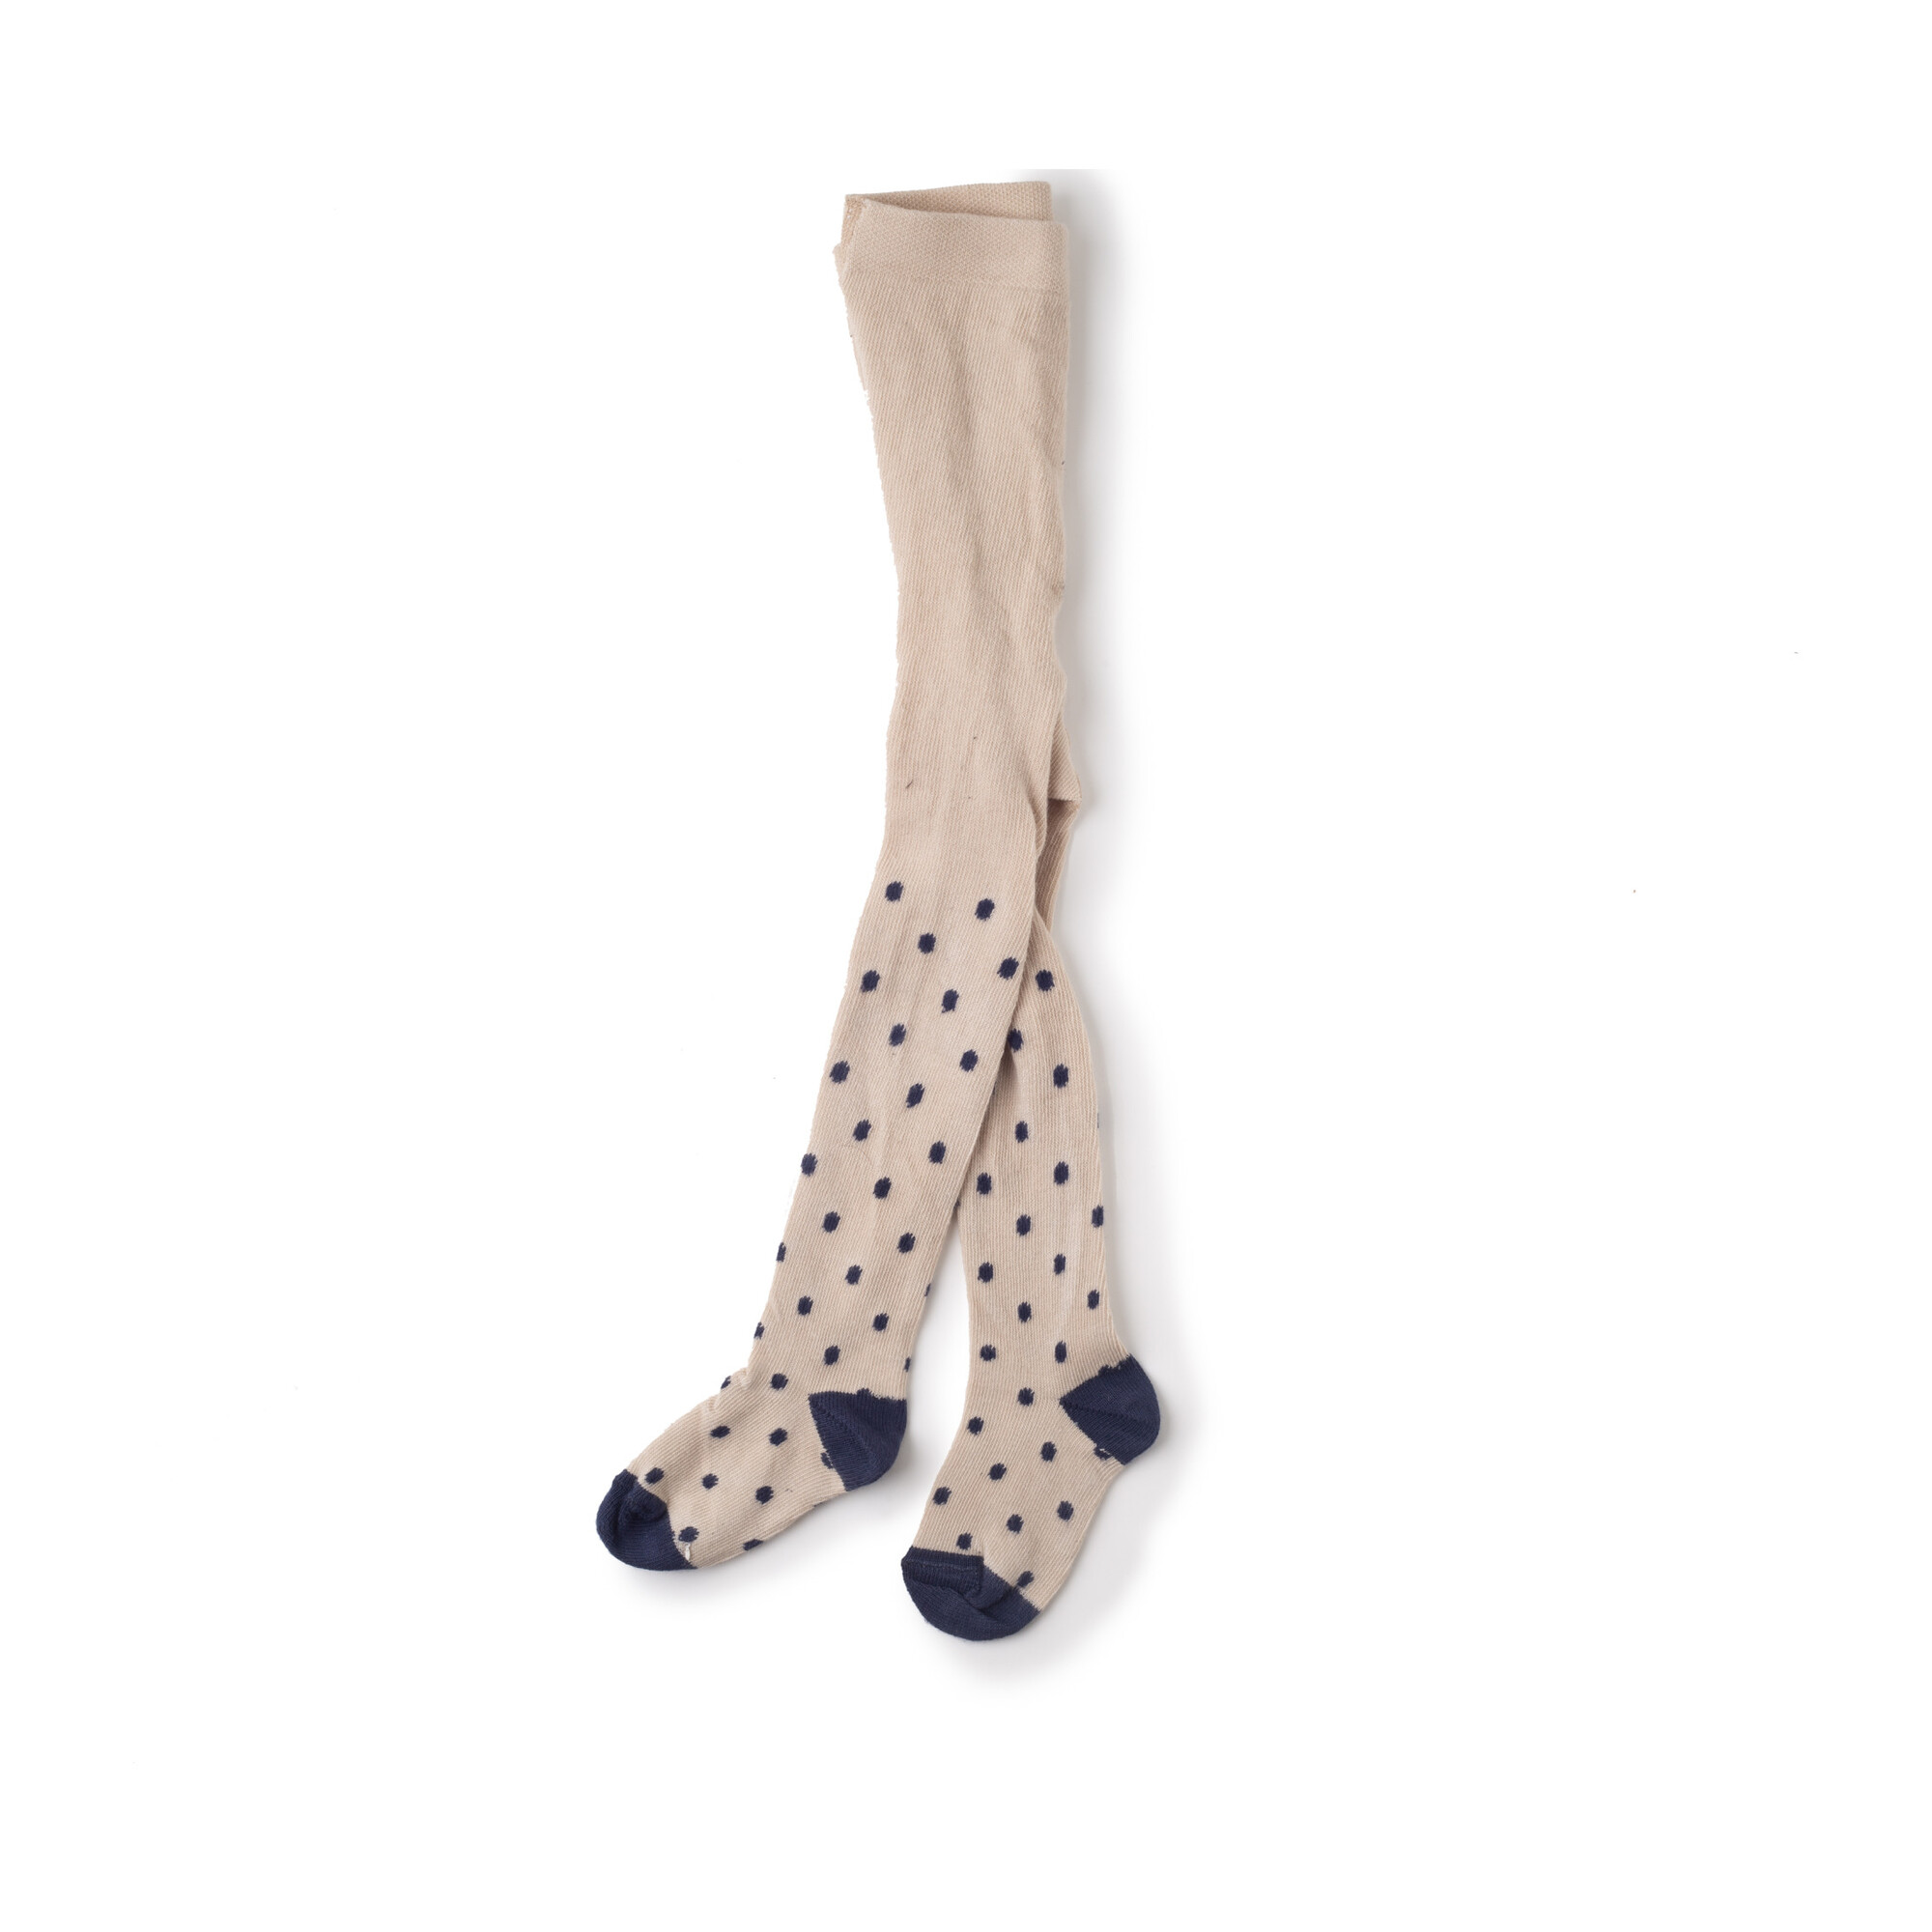 Lou Morgan Tights, Beige with Blue Dot